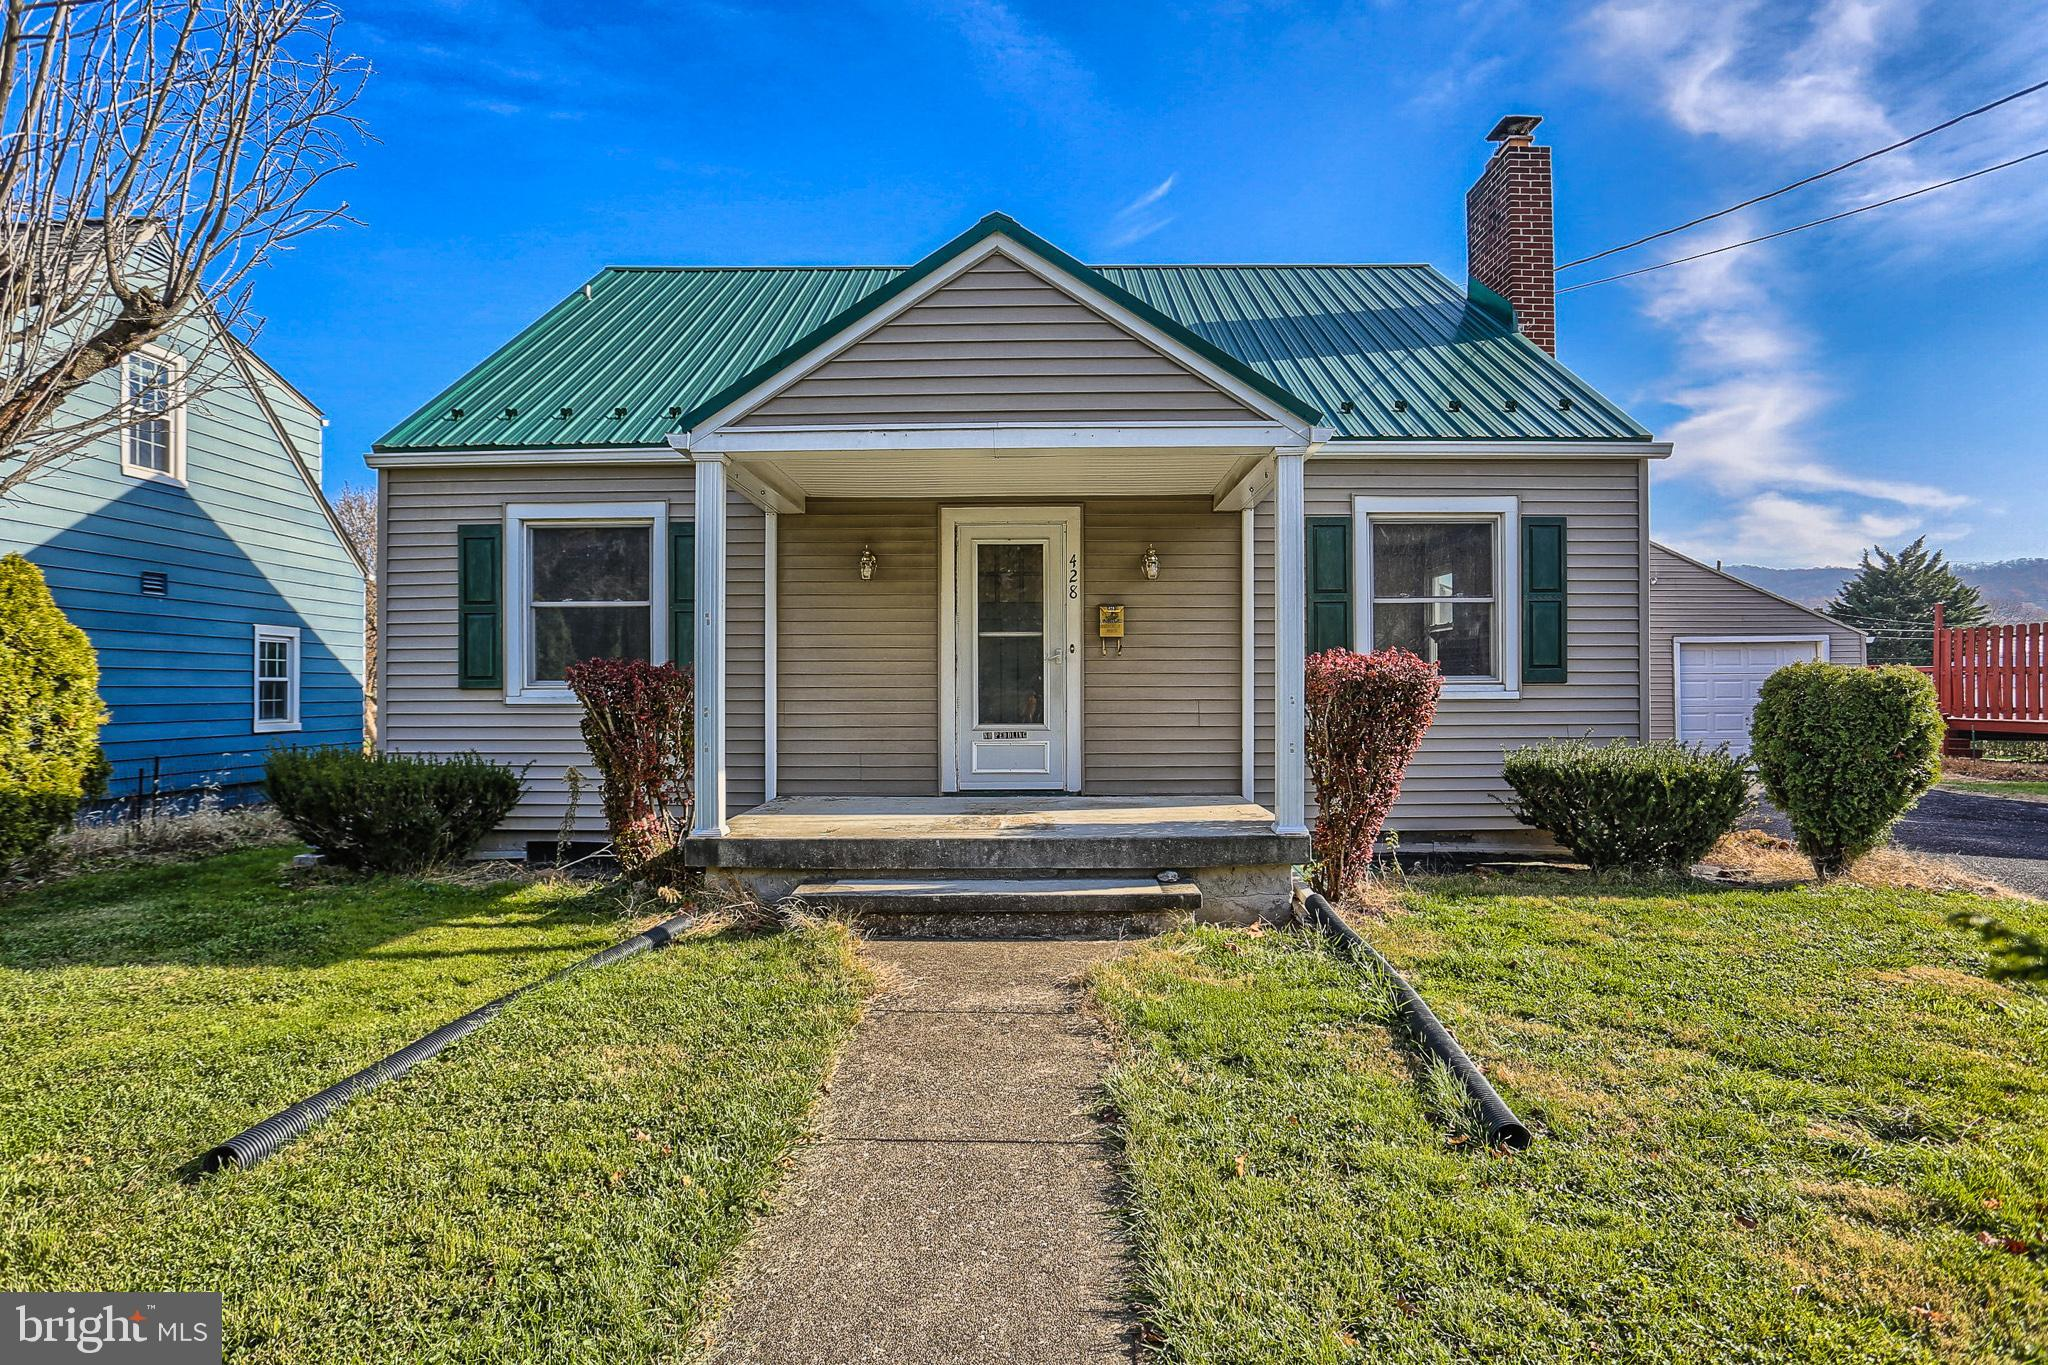 428 CHESTNUT STREET, MOUNT HOLLY SPRINGS, PA 17065